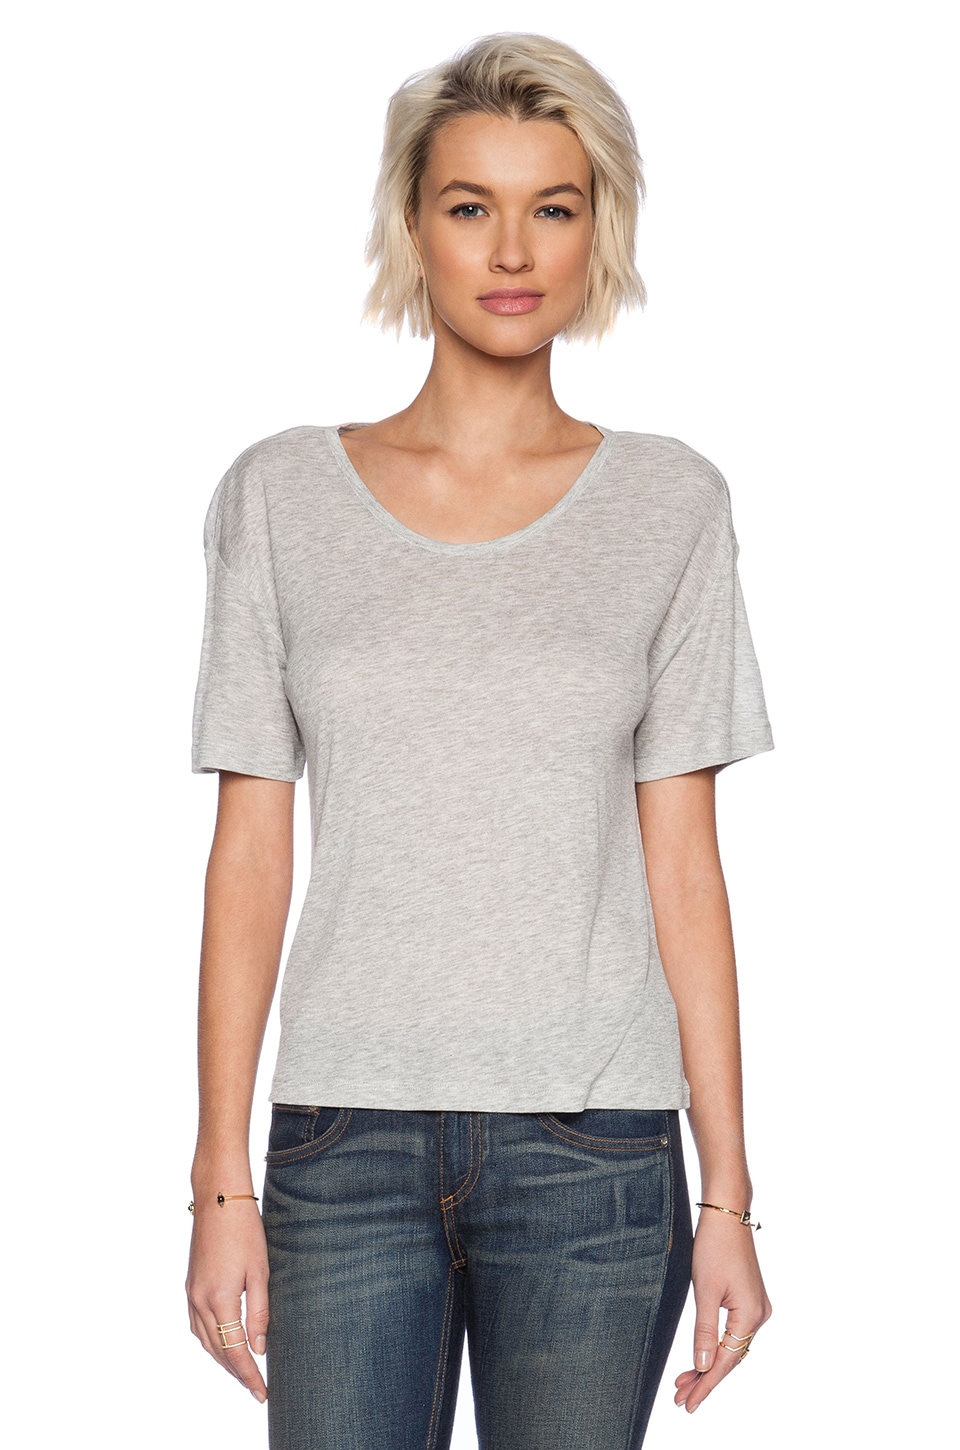 T by Alexander Wang Soft Melange Rib Oversize Tee in Light Heather Grey